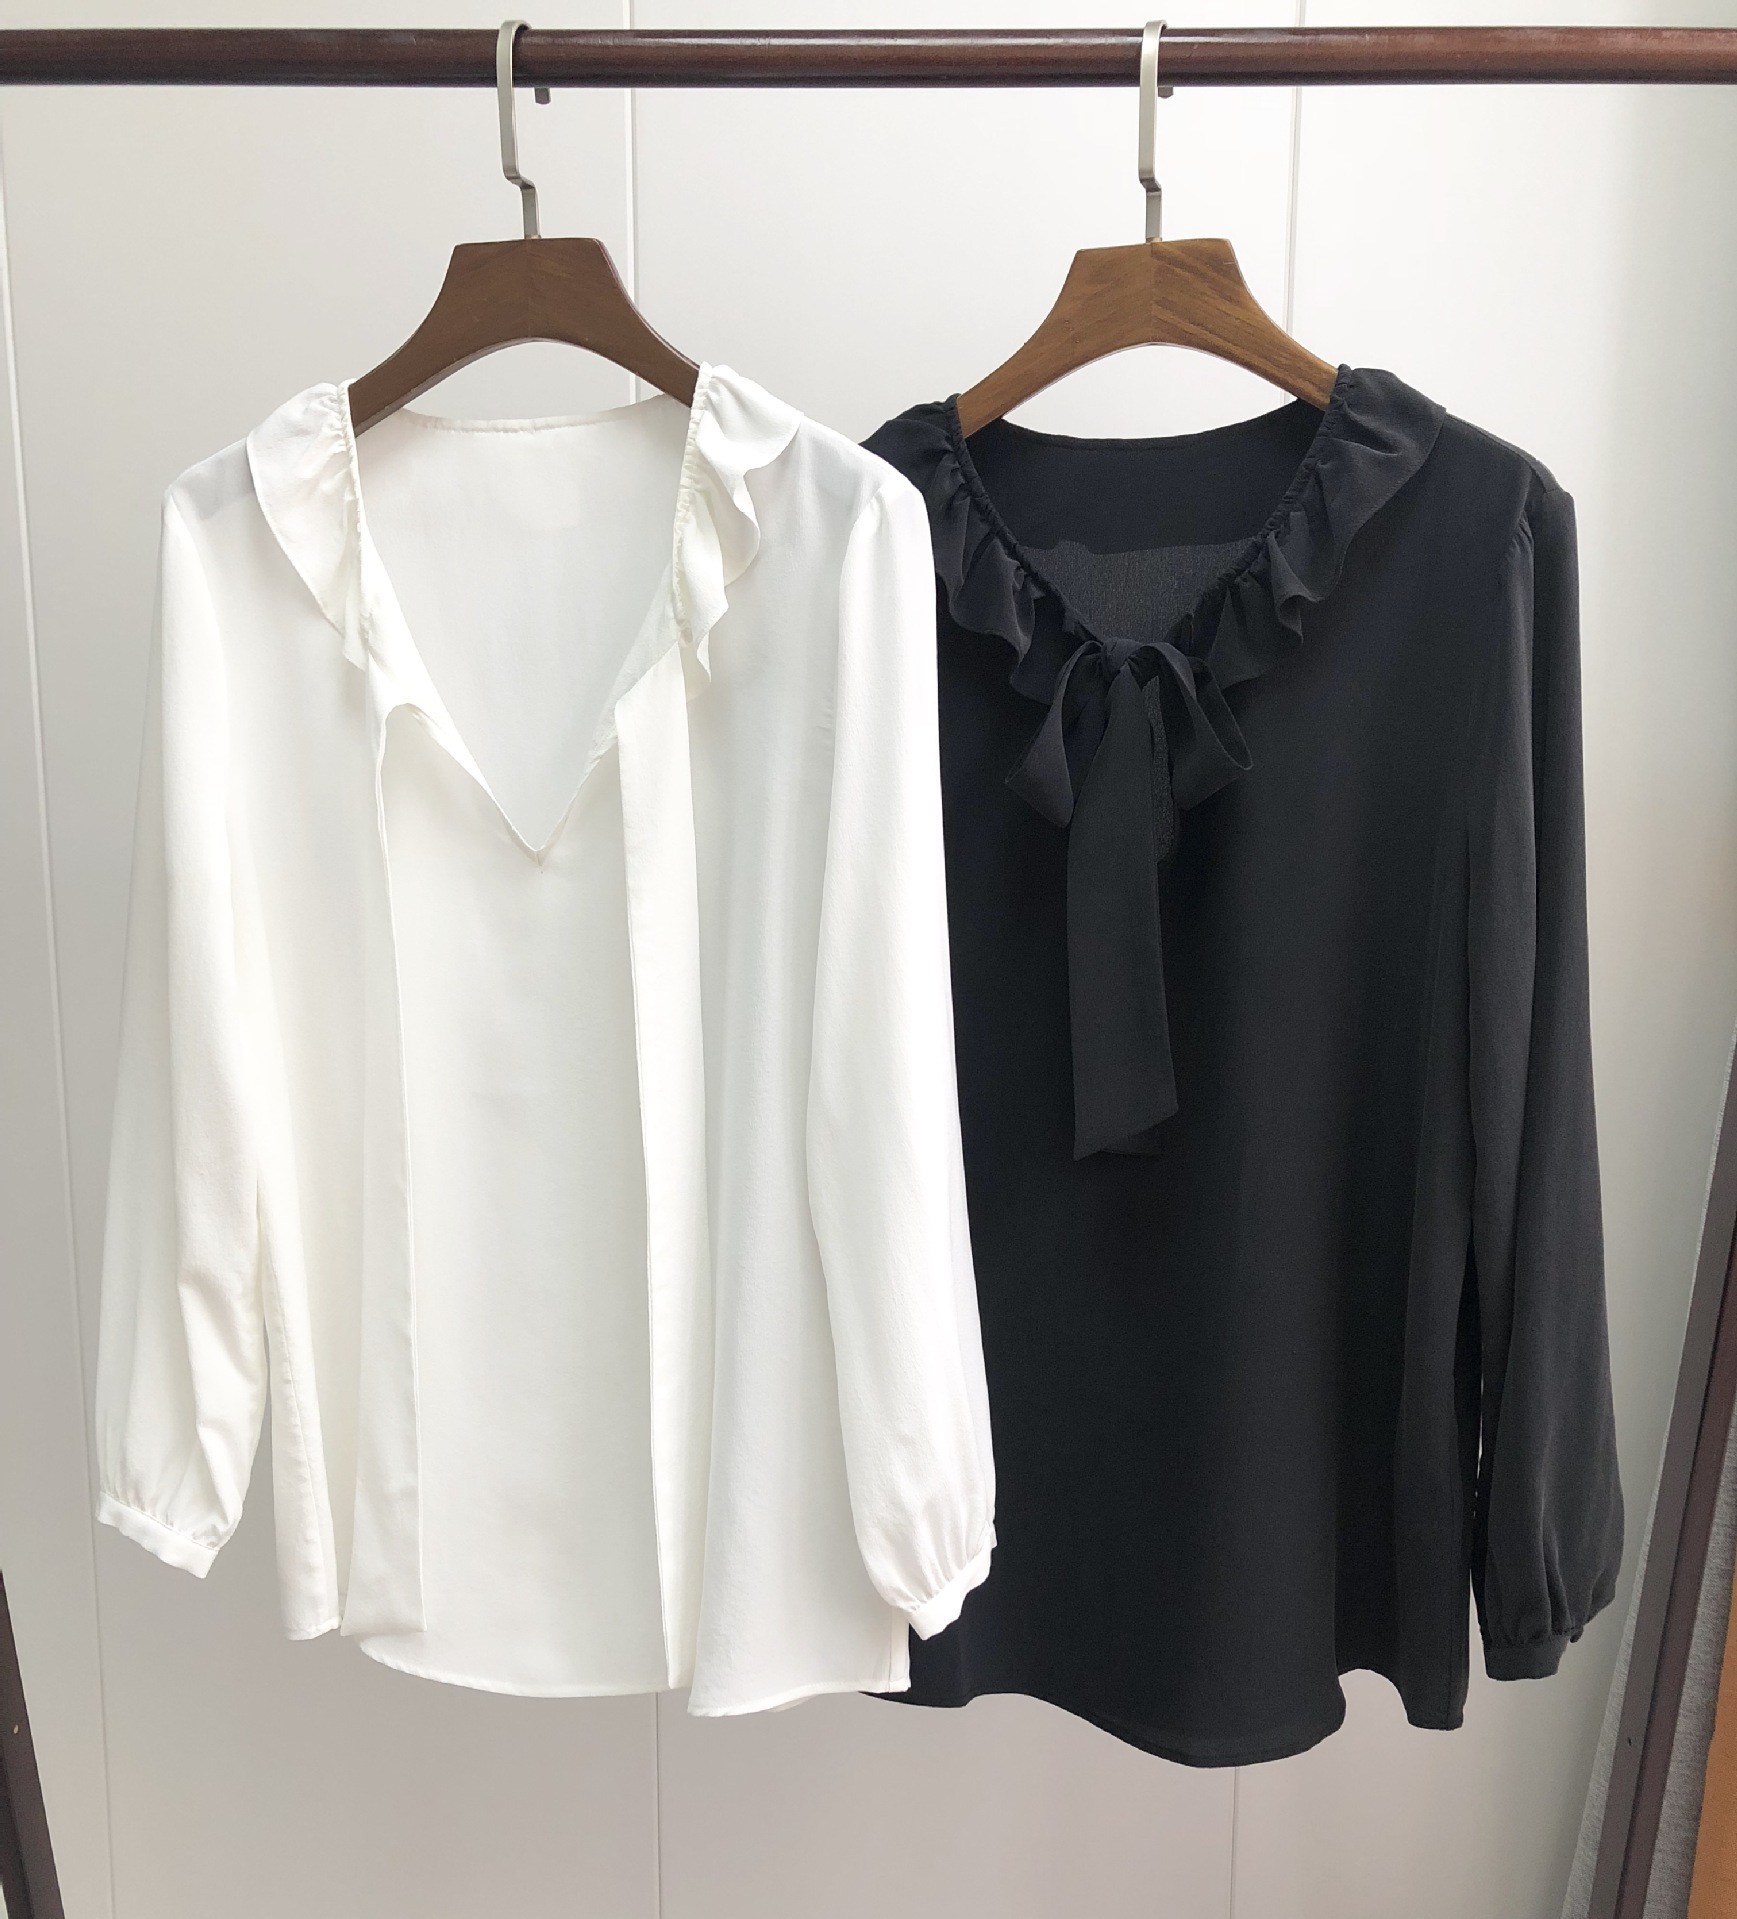 19 early spring style Ruffled neck100 silk shirt bow tie small women long sleeve shirts women